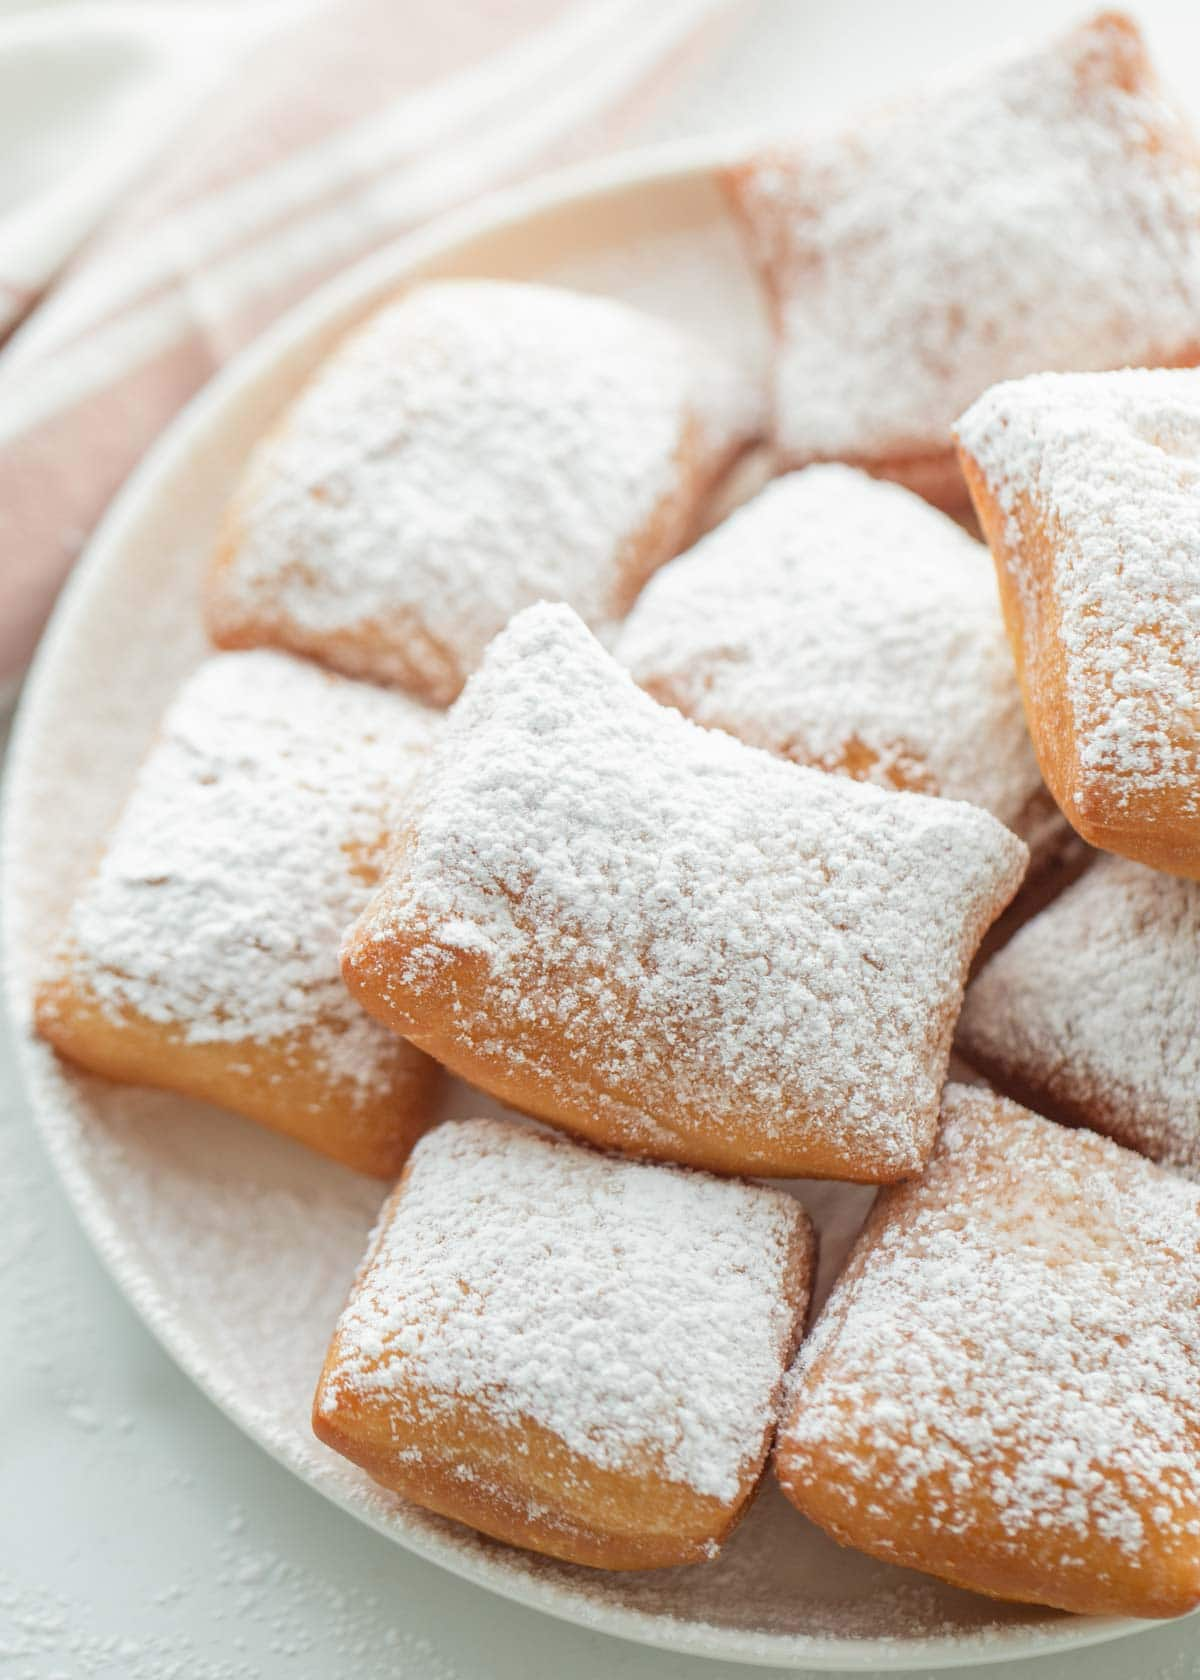 powder sugar coated beignets on a white plate